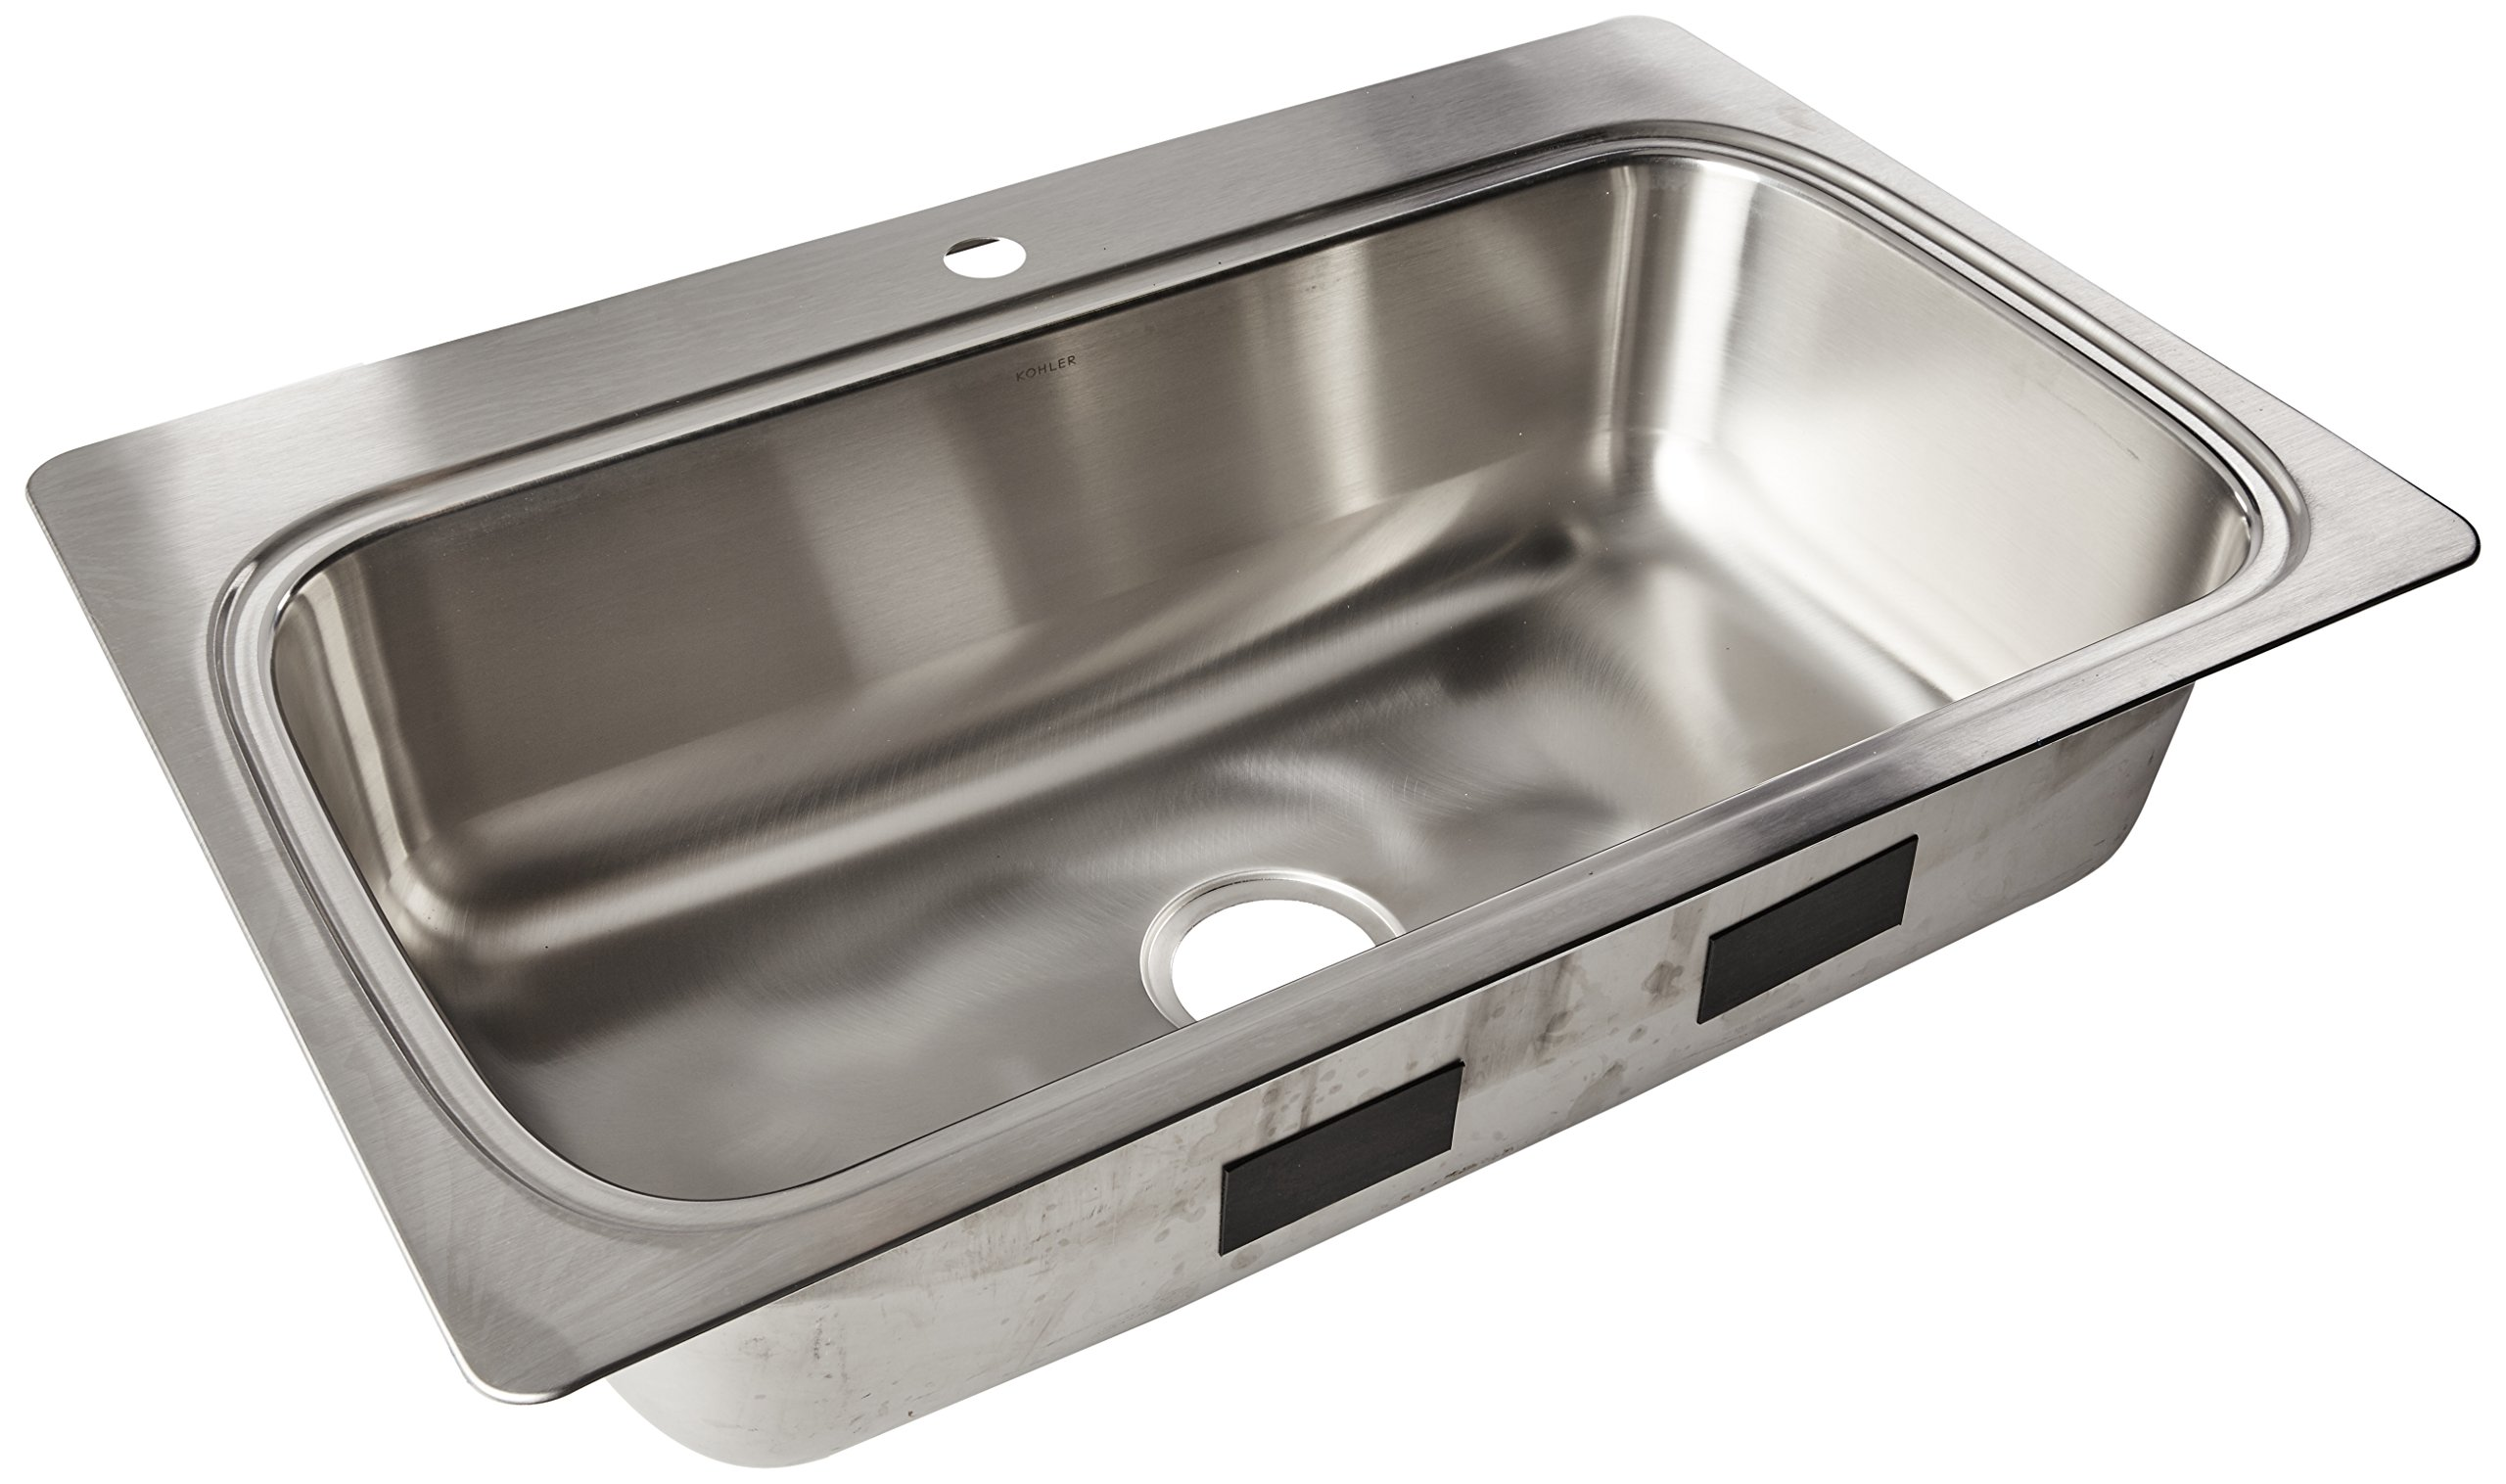 Kohler K-20060-1-NA Verse 33 inch x 22 inch Drop-In single Bowl Kitchen Sink with single Faucet Hole; Stainless steel by Kohler